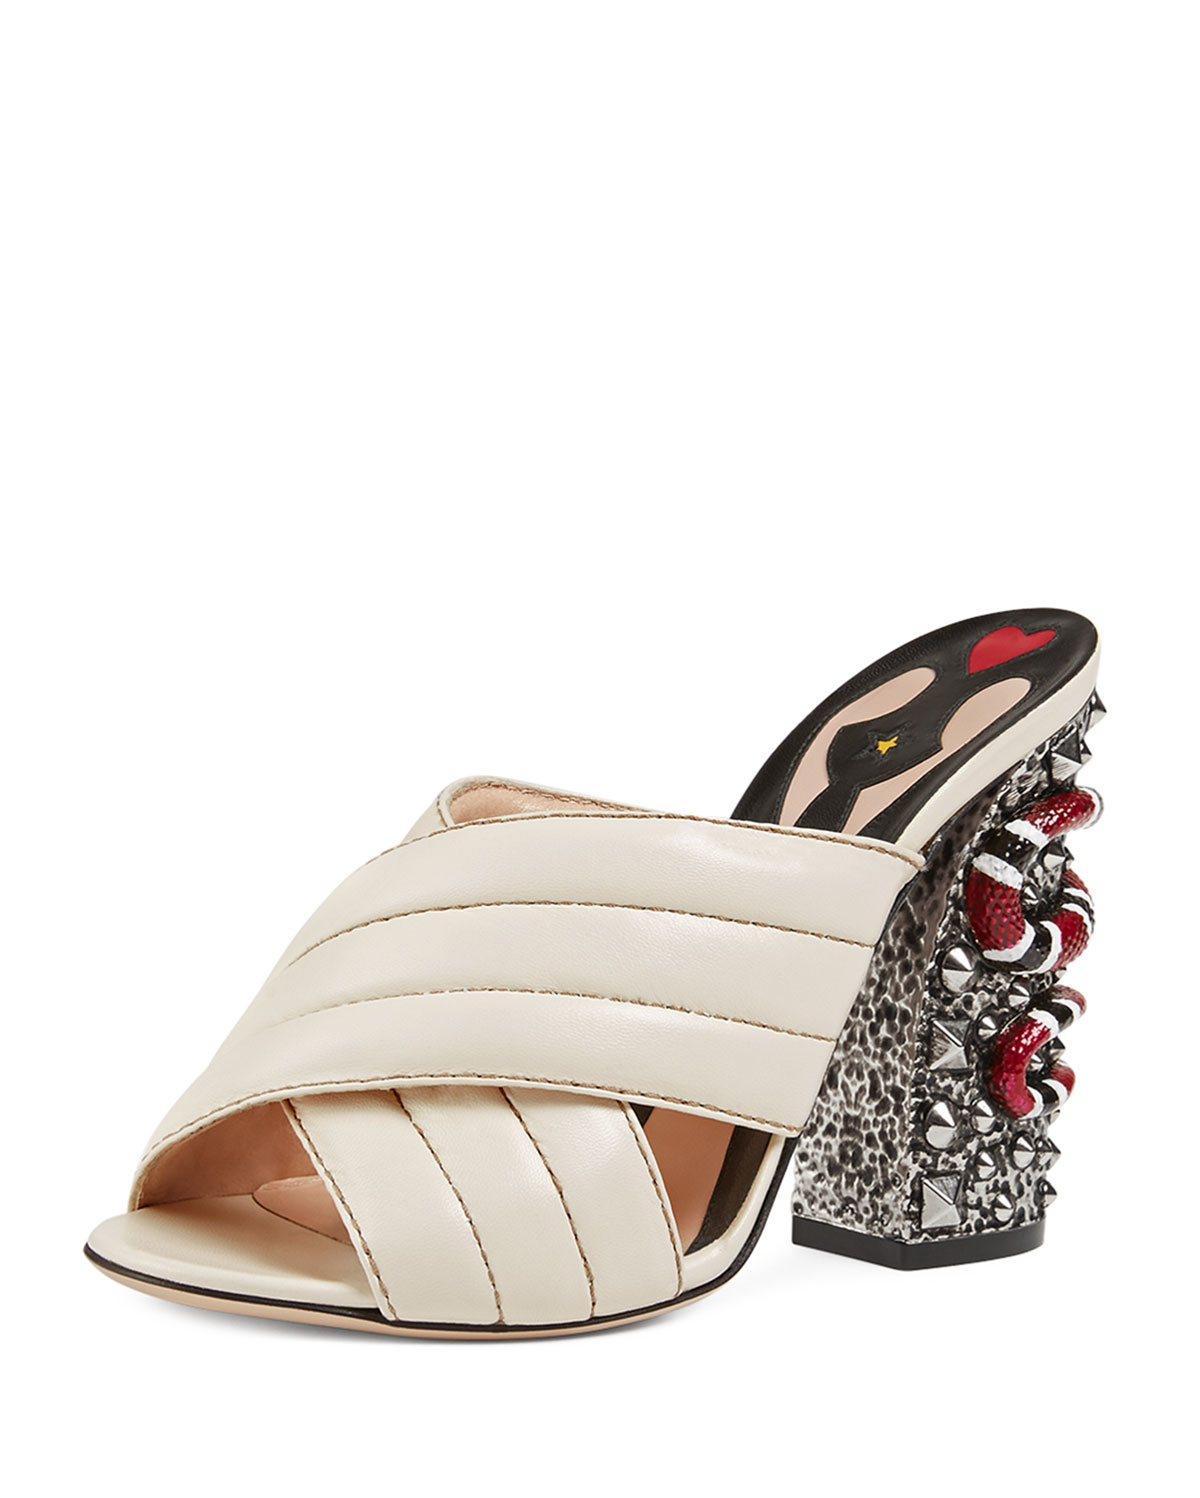 Gucci Webby Quilted Leather Snake Heel Mule Sandal In